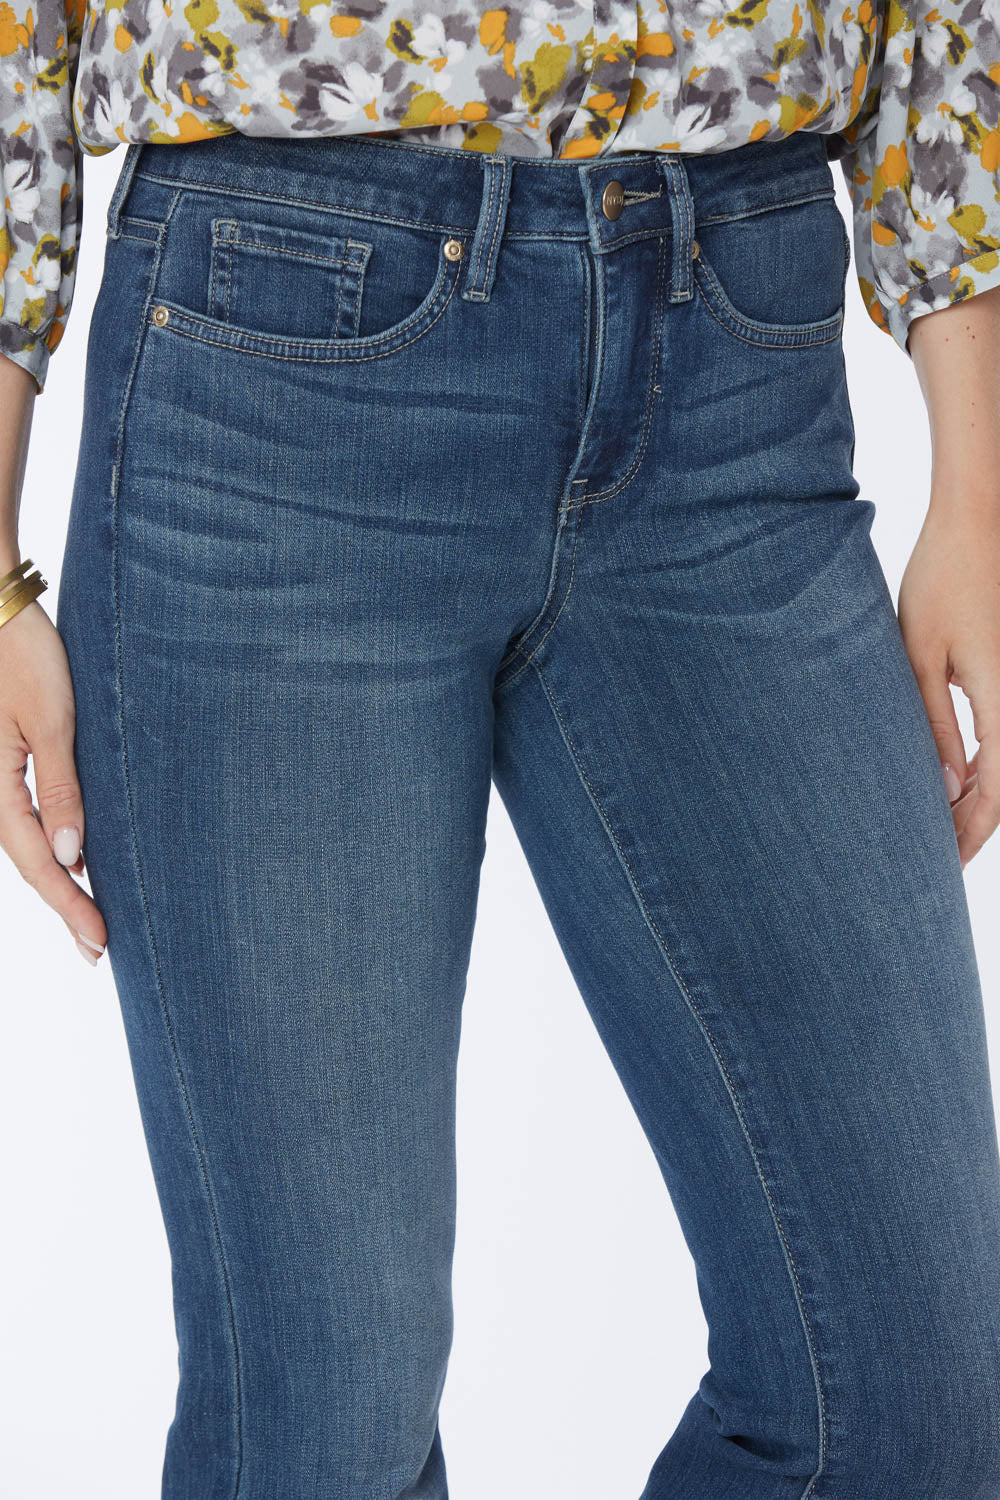 Barbara Bootcut Jeans In Tall - BALANCE